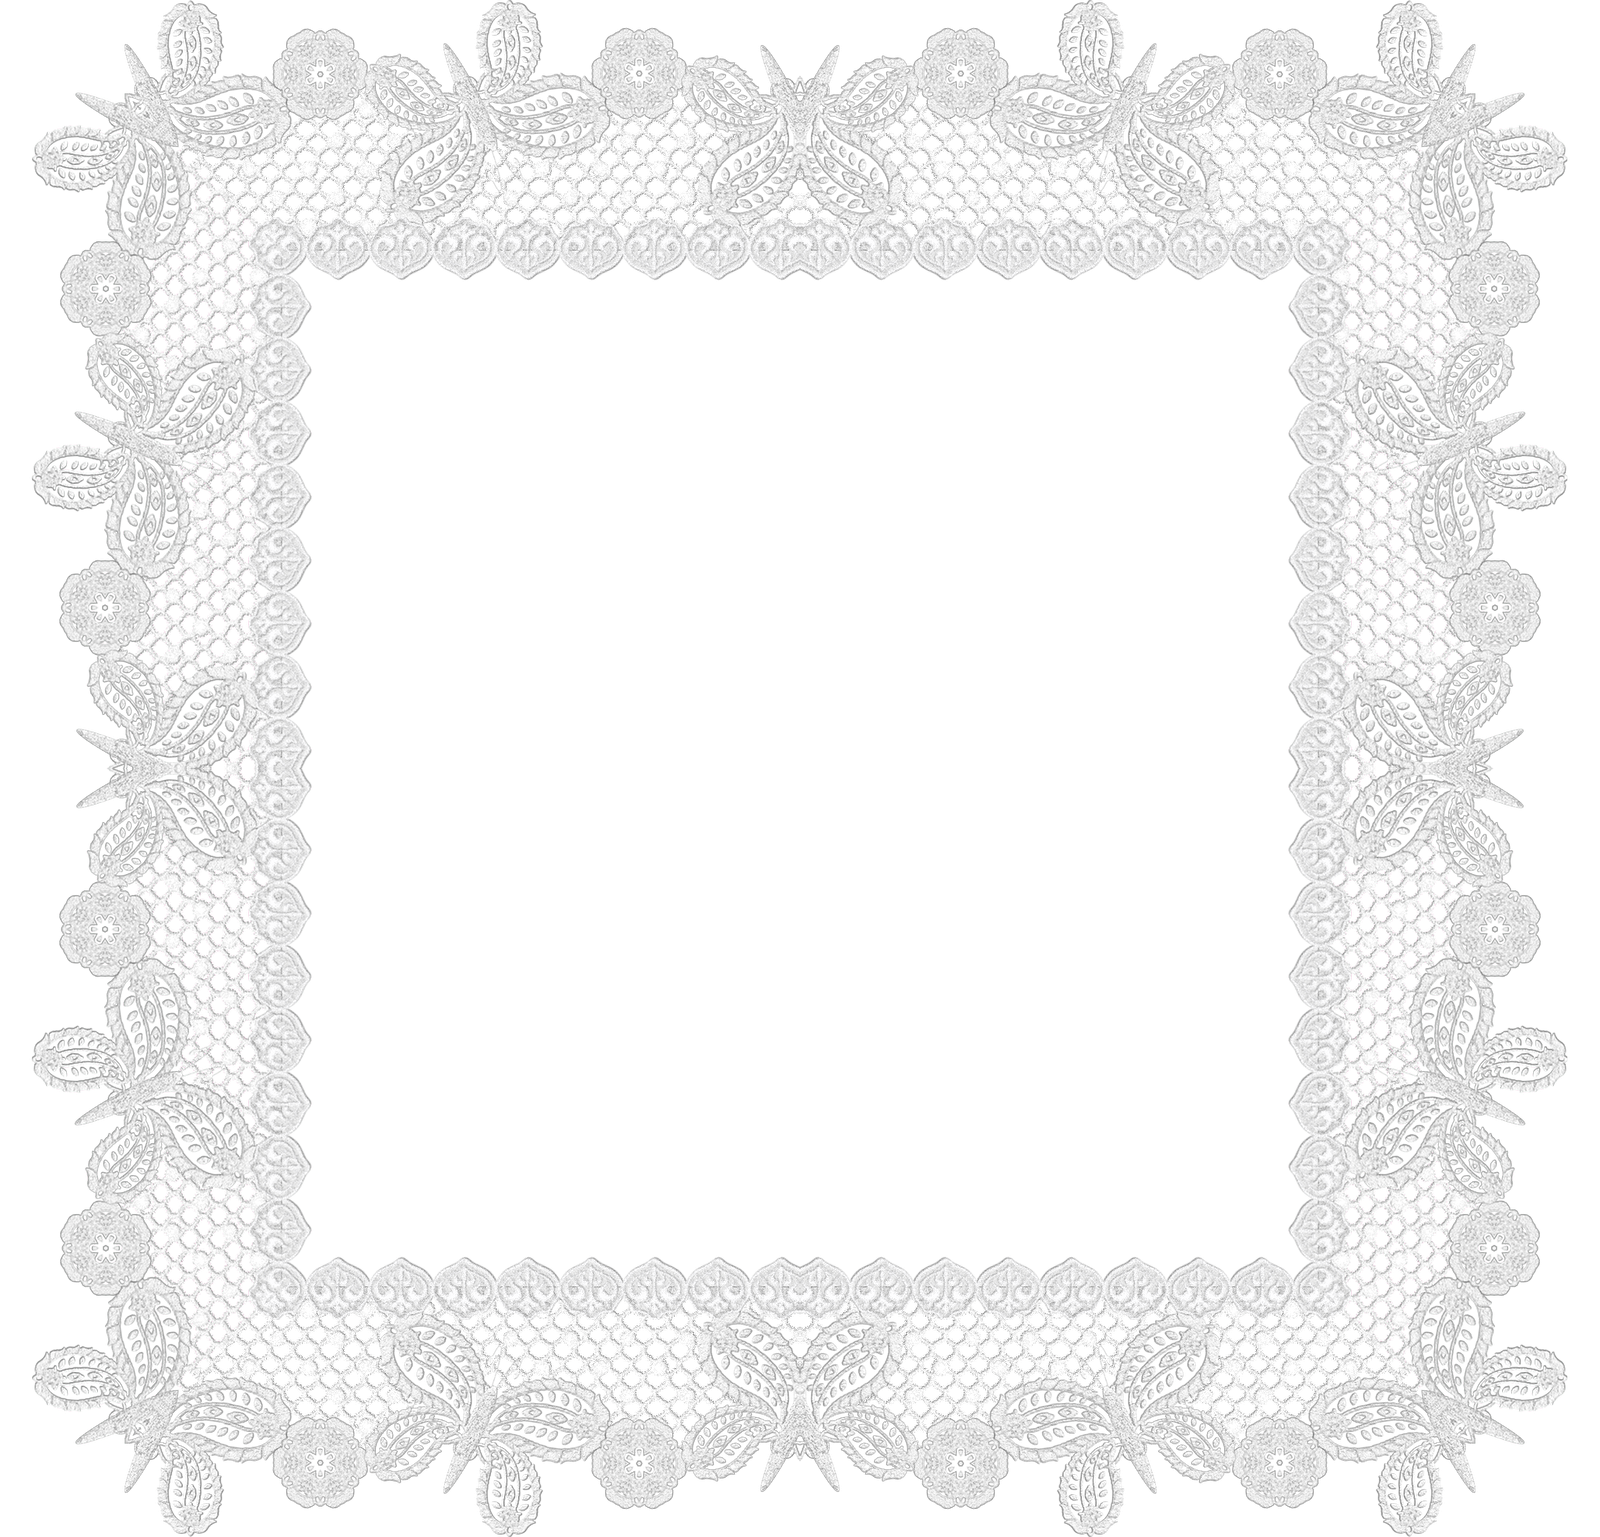 Free Lace Border Png | Joy Studio Design Gallery - Best Design